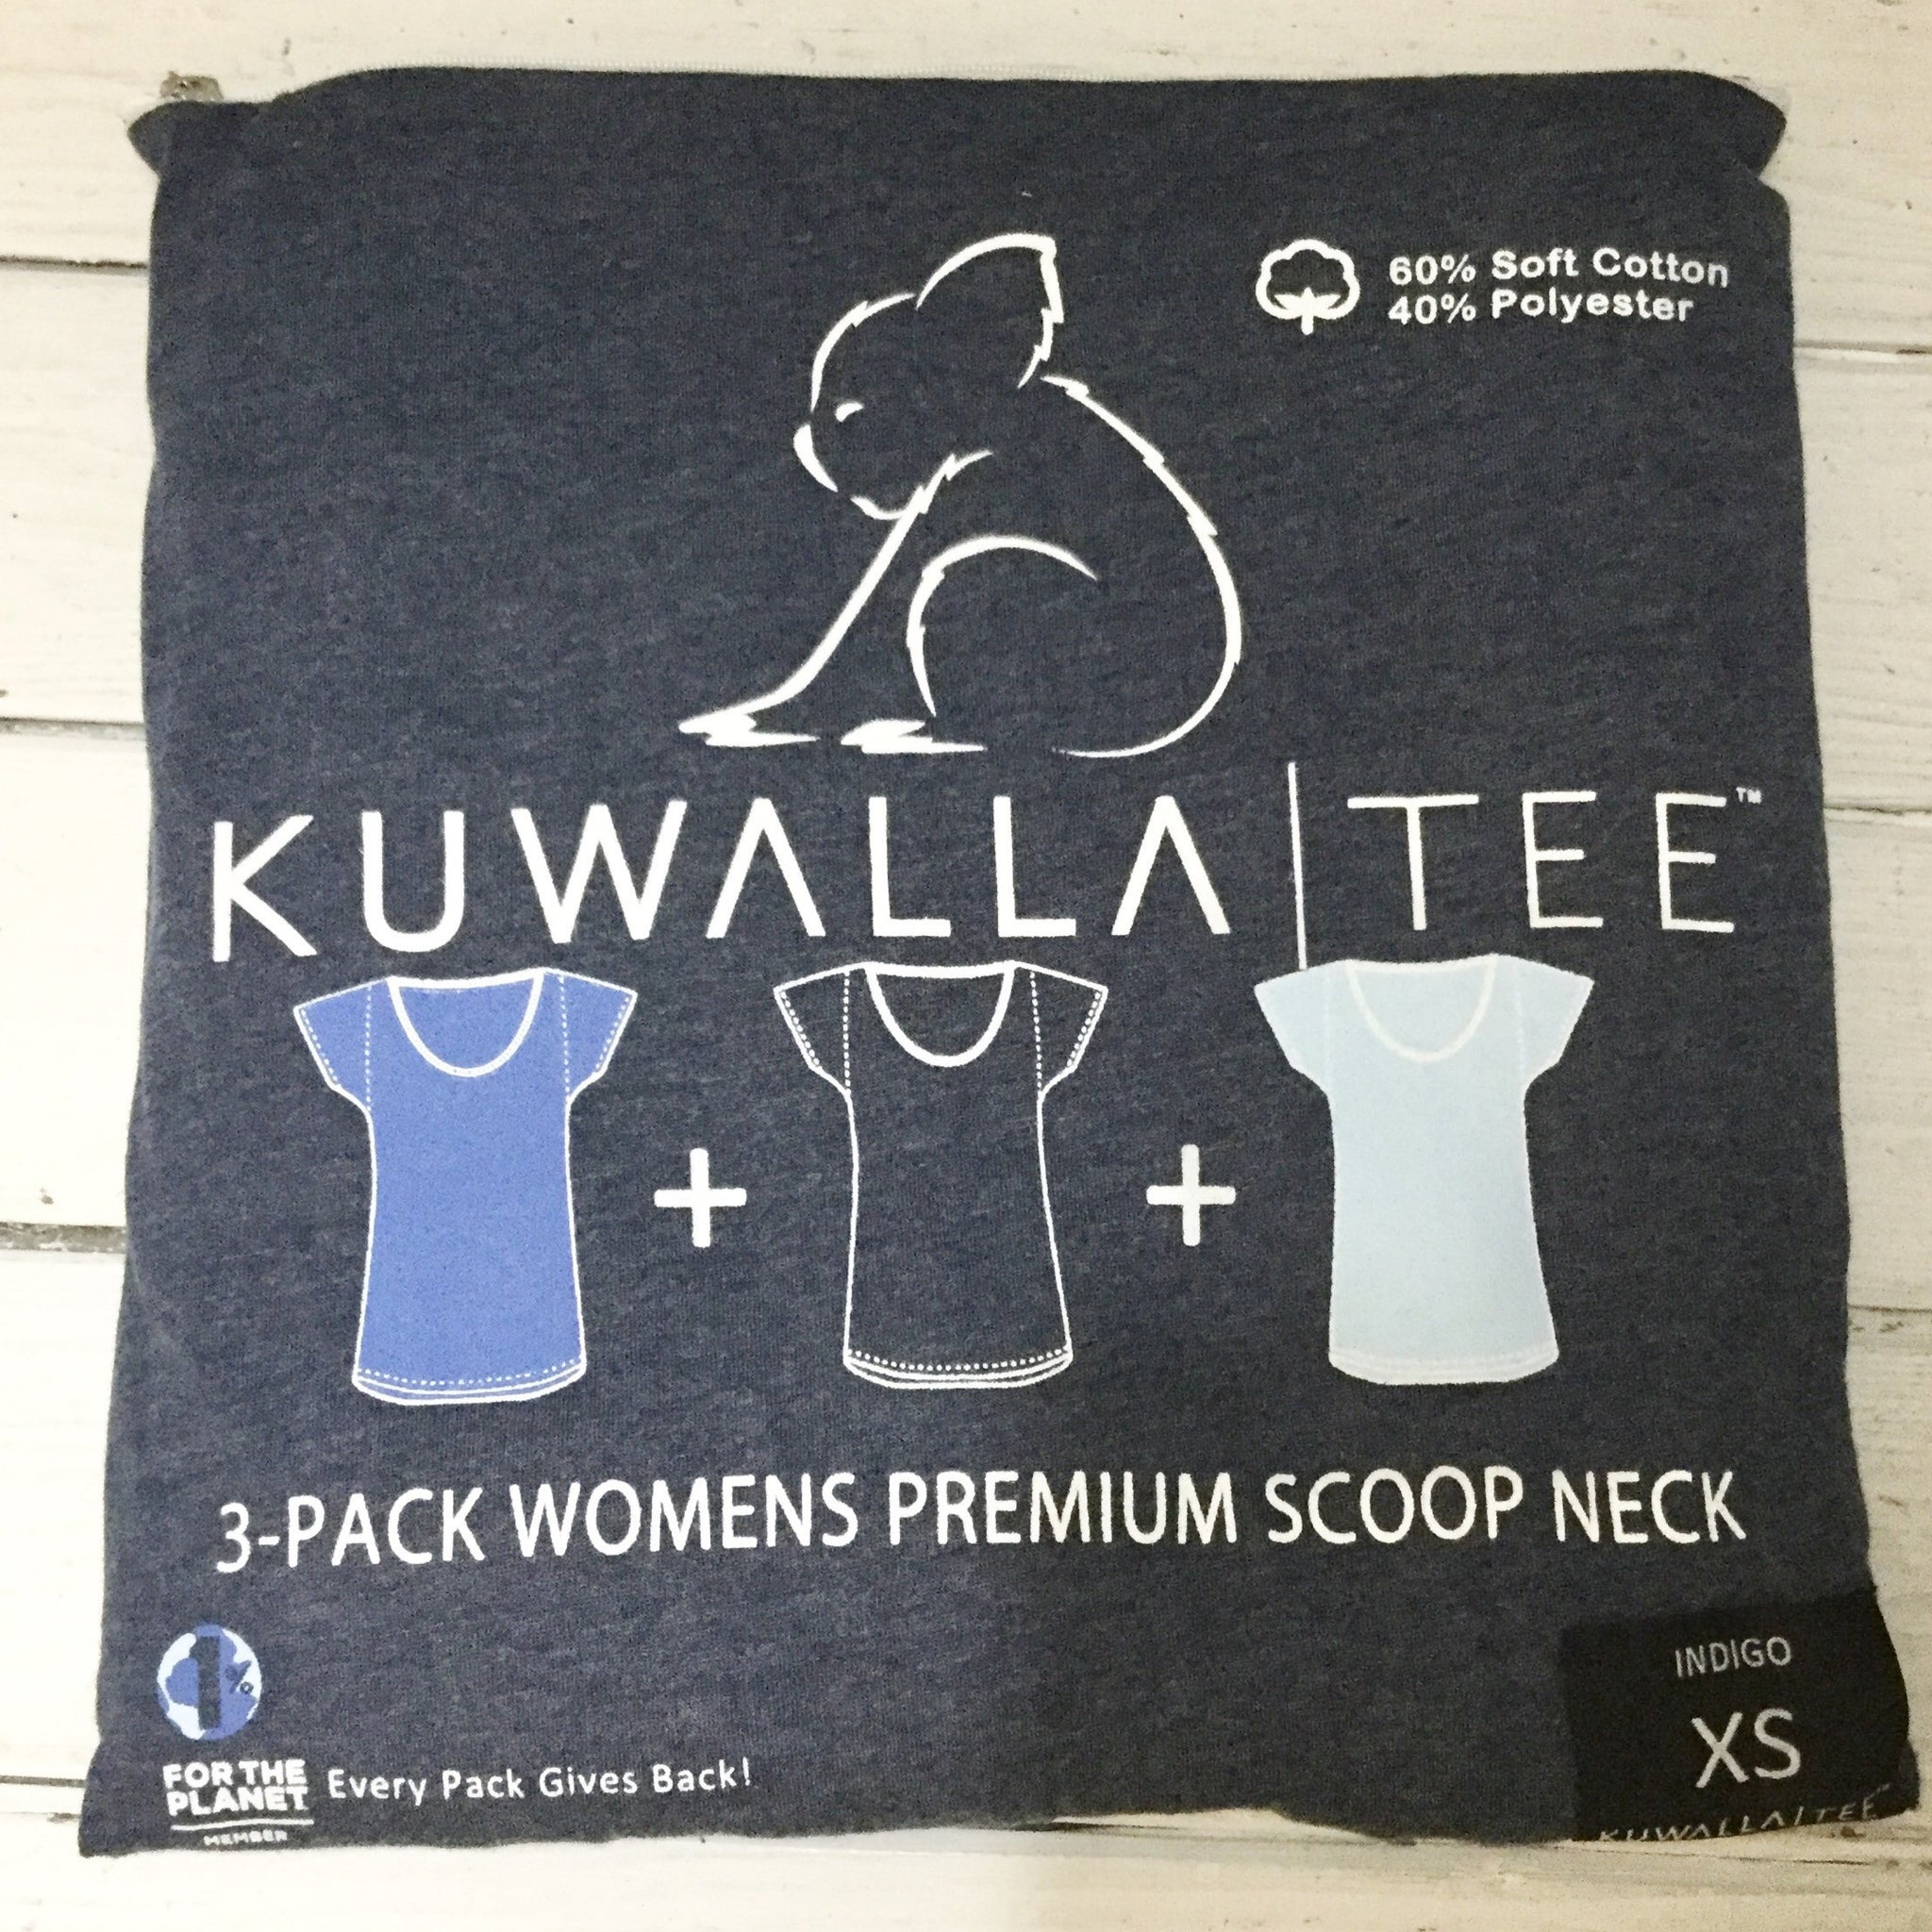 3 Pack Tees- Scoop Neck, Indigo